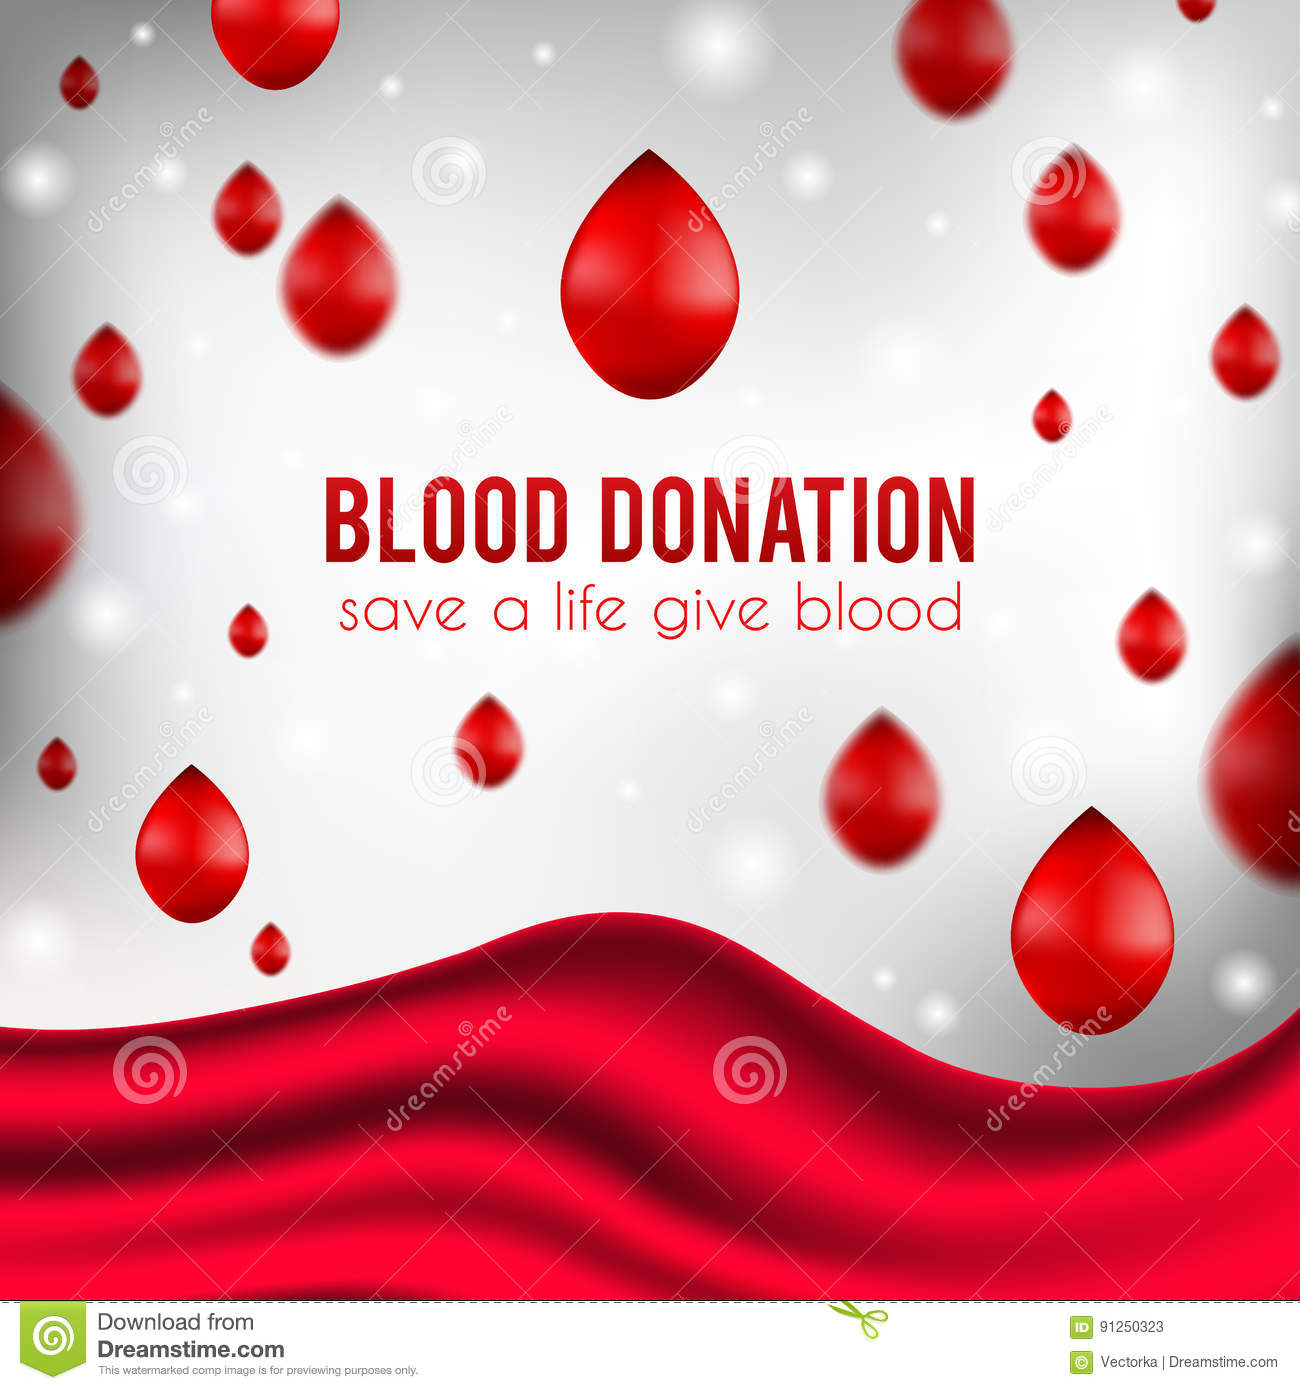 saving a life: blood donation essay Essay | निबन्ध is a channel developed especially for online free essays, articles, speeches, debates, biographies, stories & poems in hindi and english languages.